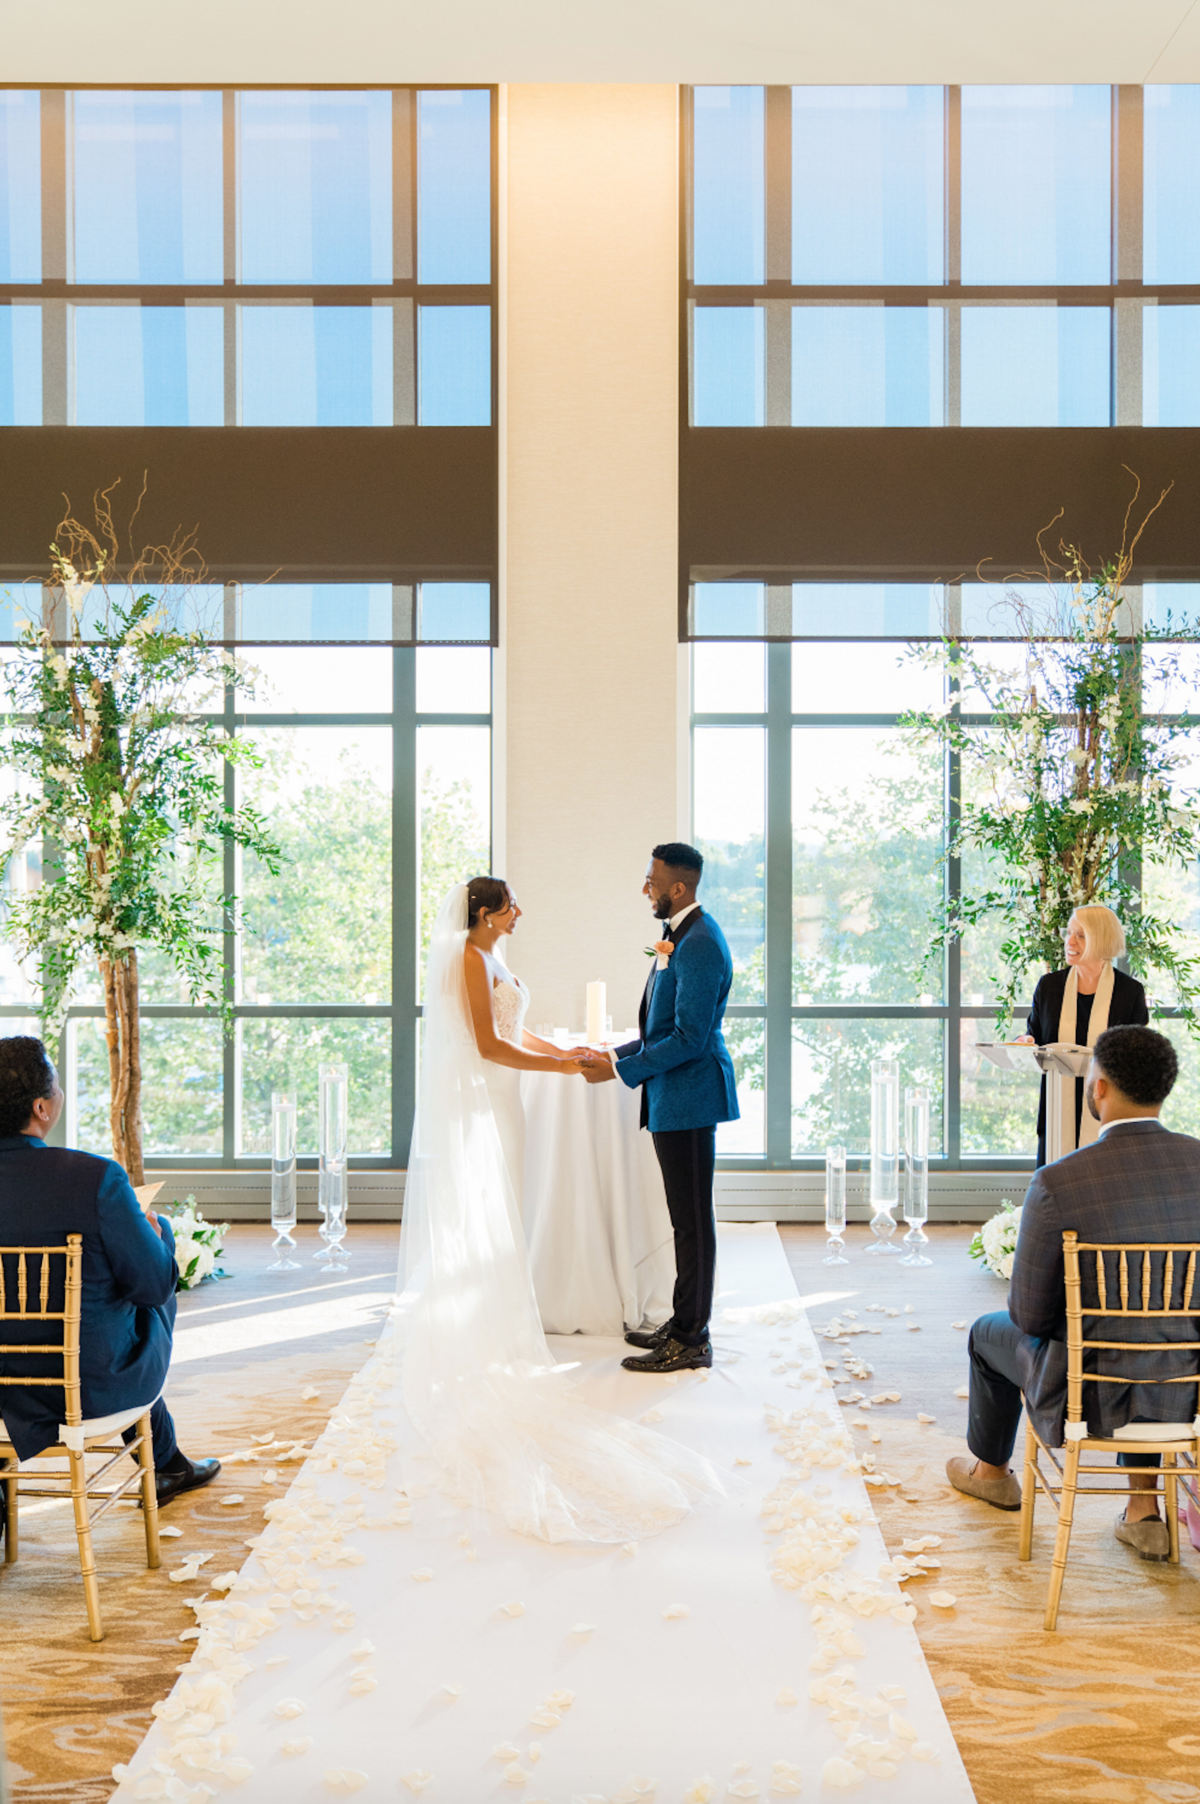 intercontinenal-wedding-planning-washington-dc-the-finer-points-planning00008